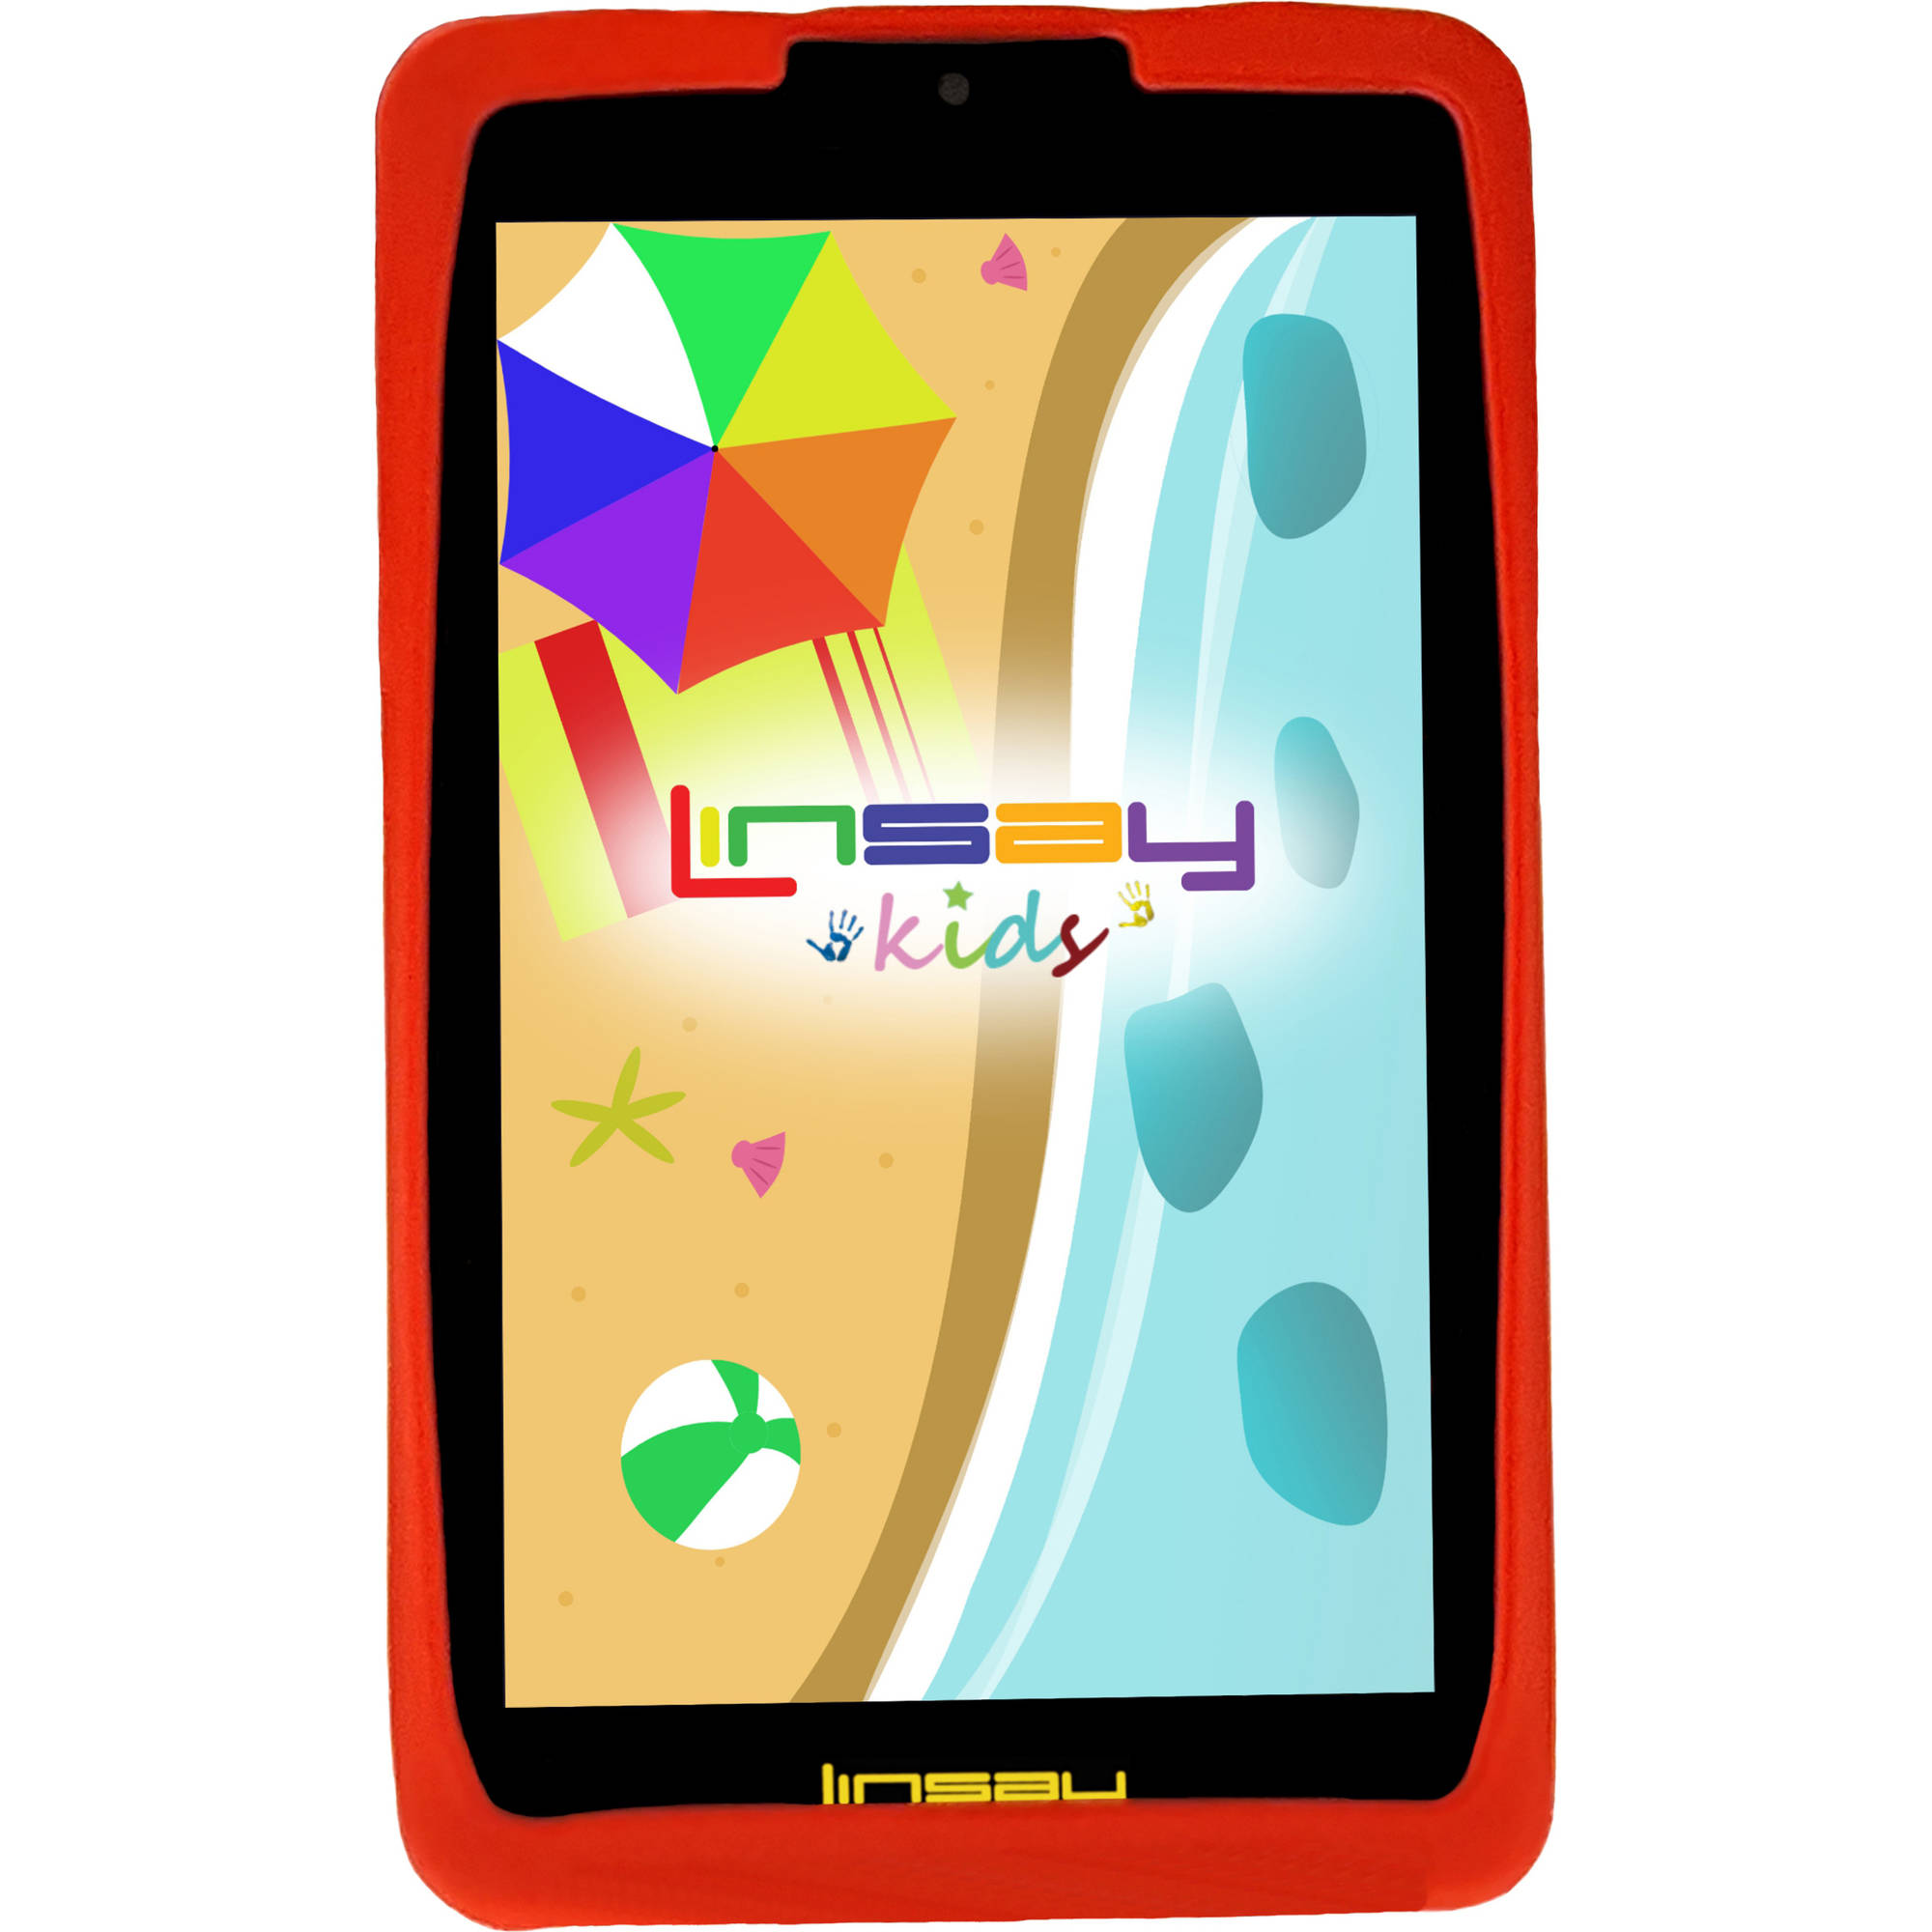 "LINSAY Kids Funny Tab 7"" 1280x800 IPS Touchscreen Tablet PC Featuring Android 4.4 (KitKat) Operating System Bundle with Red Kids Defender Case"